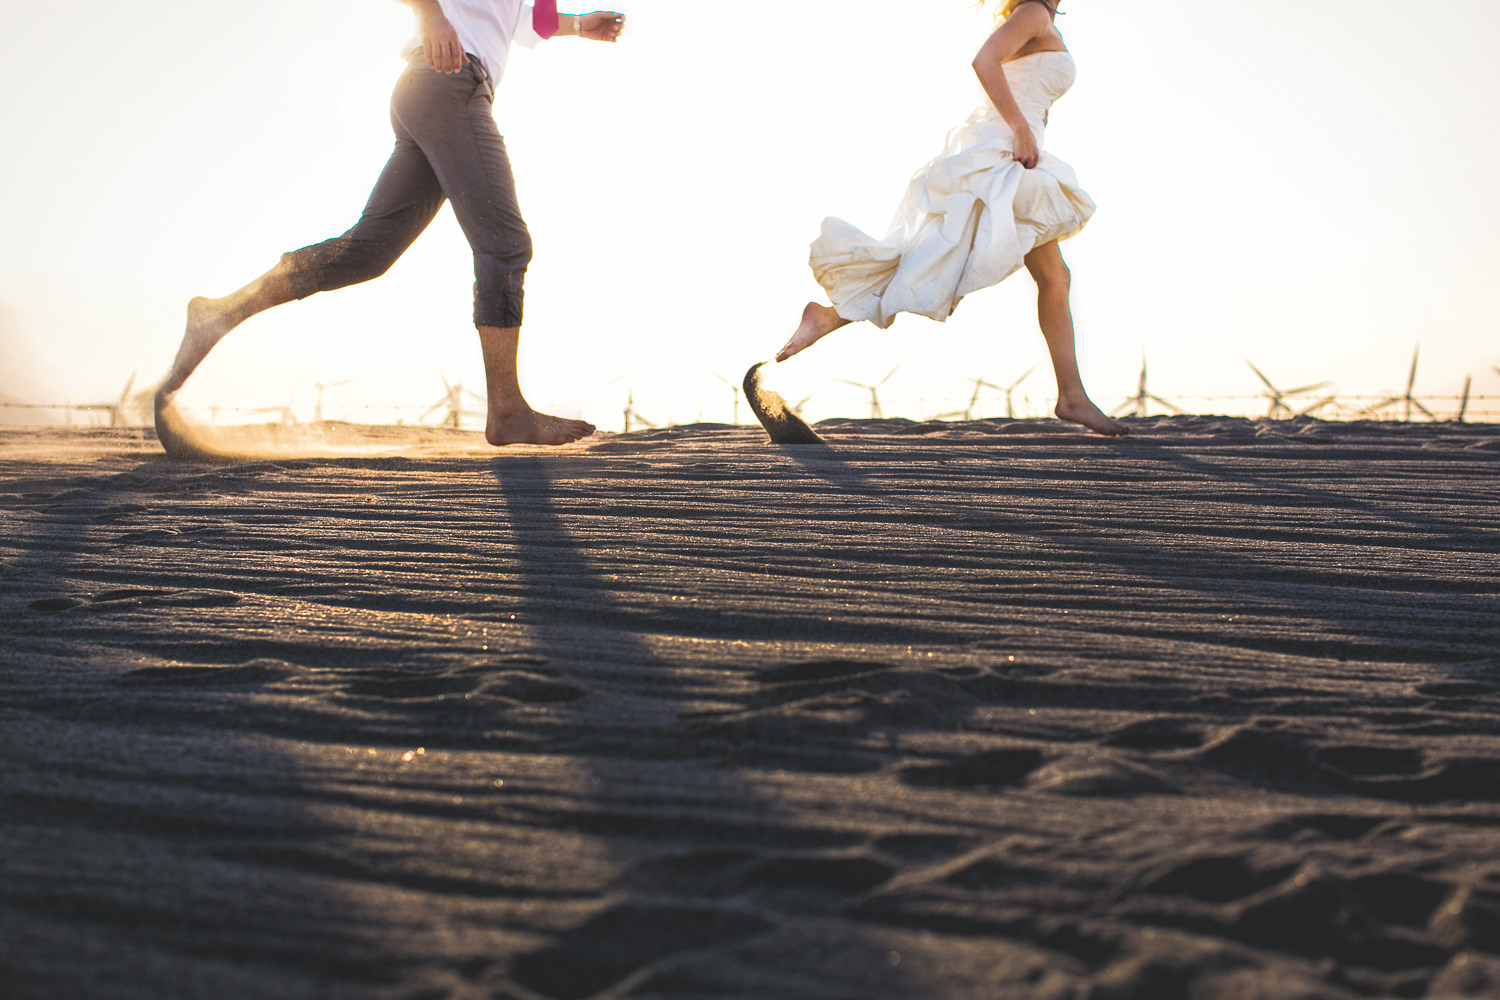 Avalon Palm Springs Photographer - Running in the sand